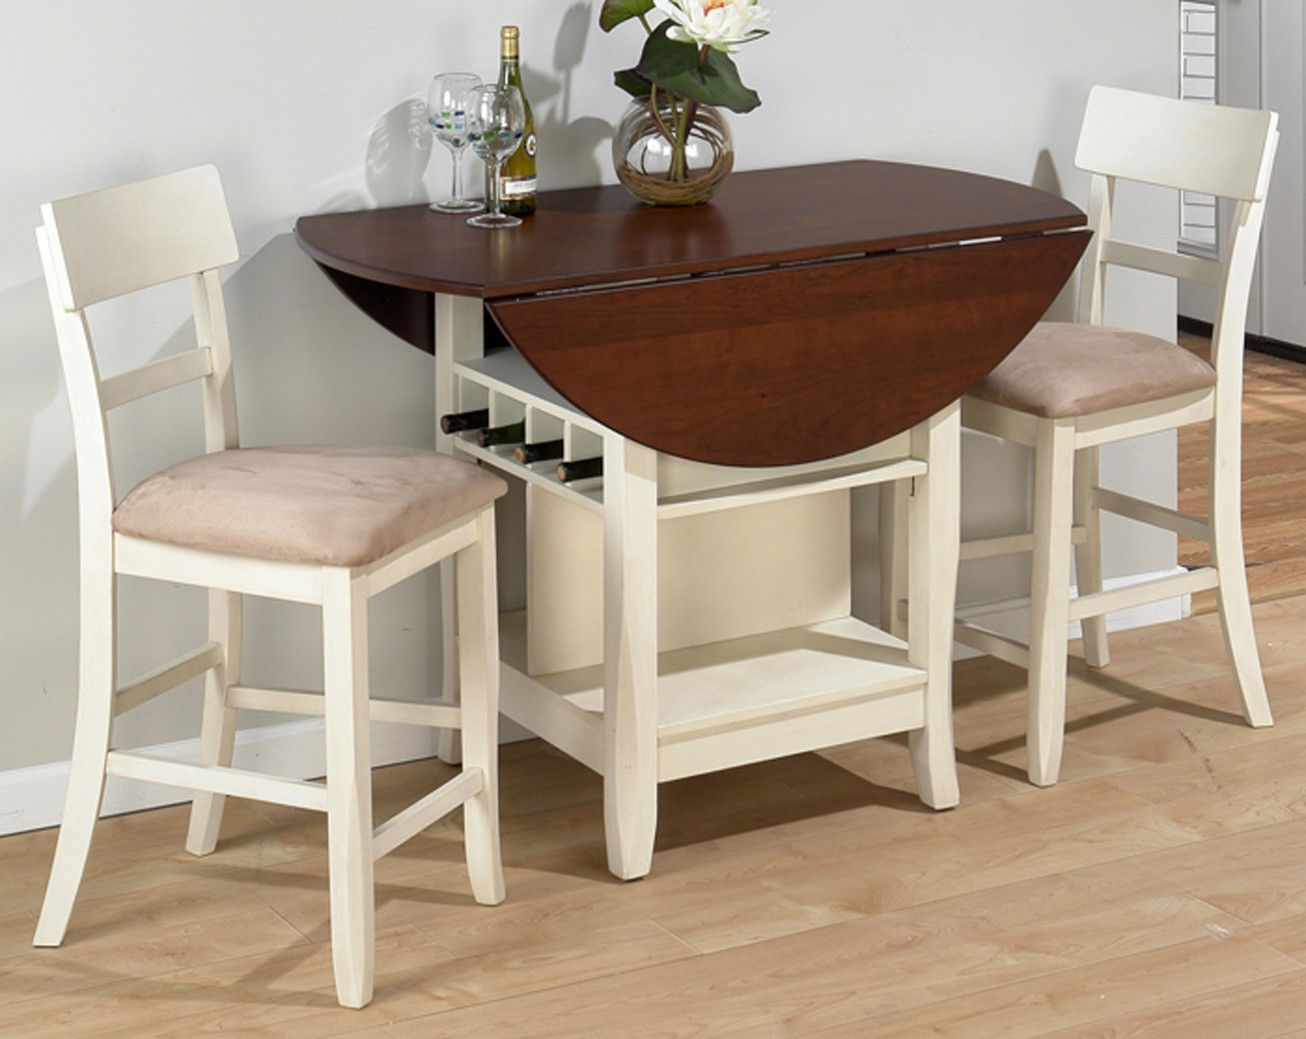 Shabby Chic Drop Leaf Dining Table For Small Spaces In Wooden With White Comfy Chairs Beautified